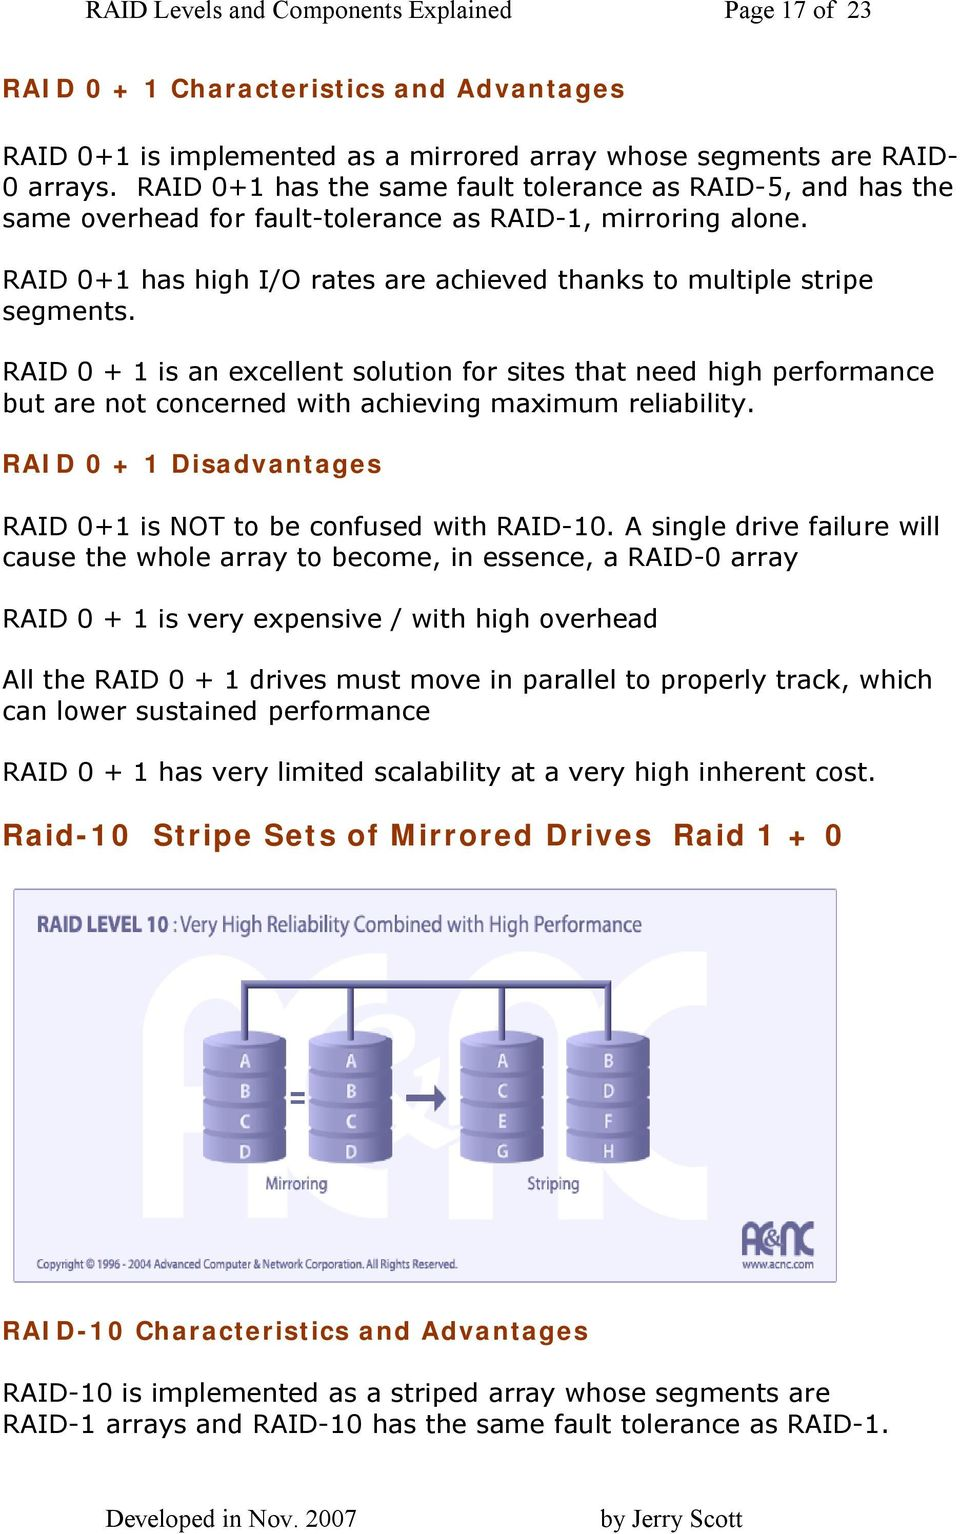 RAID 0 + 1 is an excellent solution for sites that need high performance but are not concerned with achieving maximum reliability. RAID 0 + 1 Disadvantages RAID 0+1 is NOT to be confused with RAID-10.